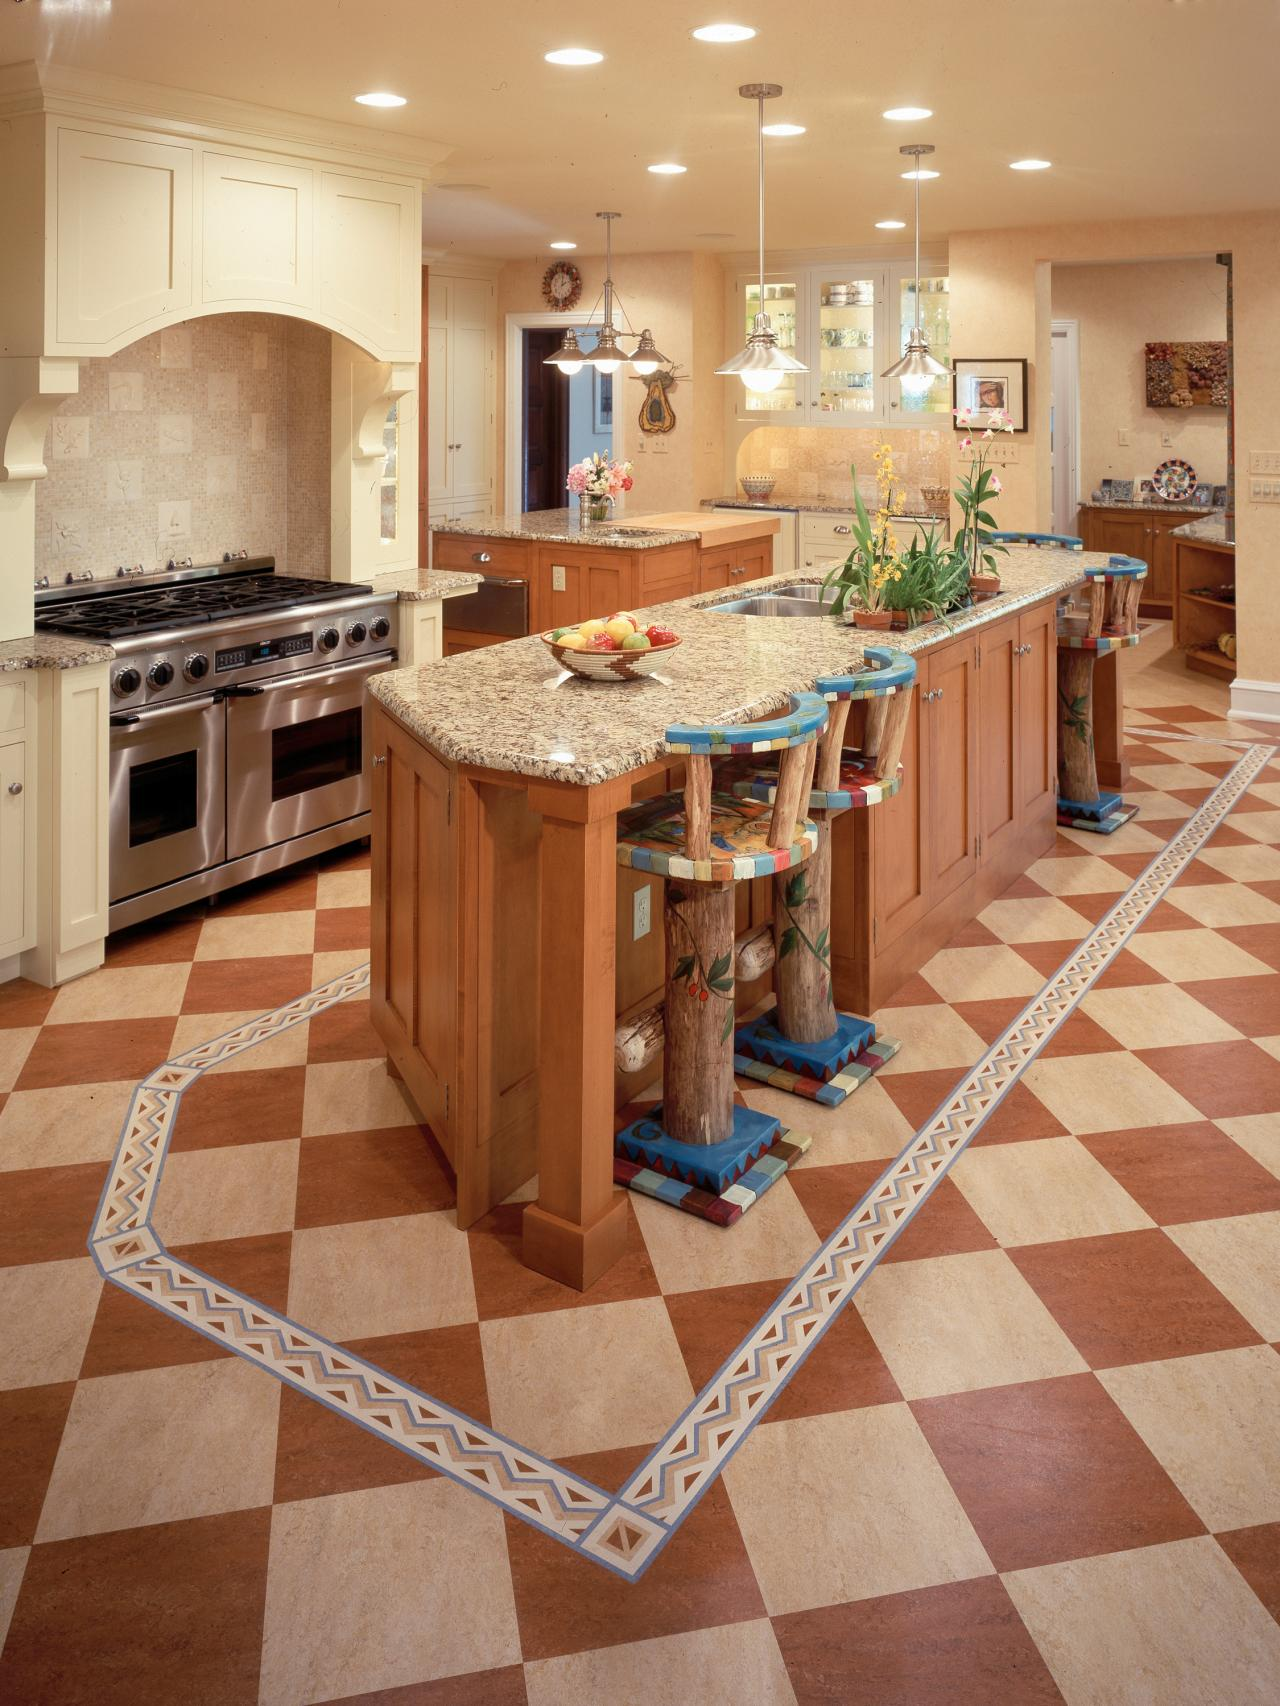 Floor Tiles In Kitchen Kitchen Floor Buying Guide Hgtv